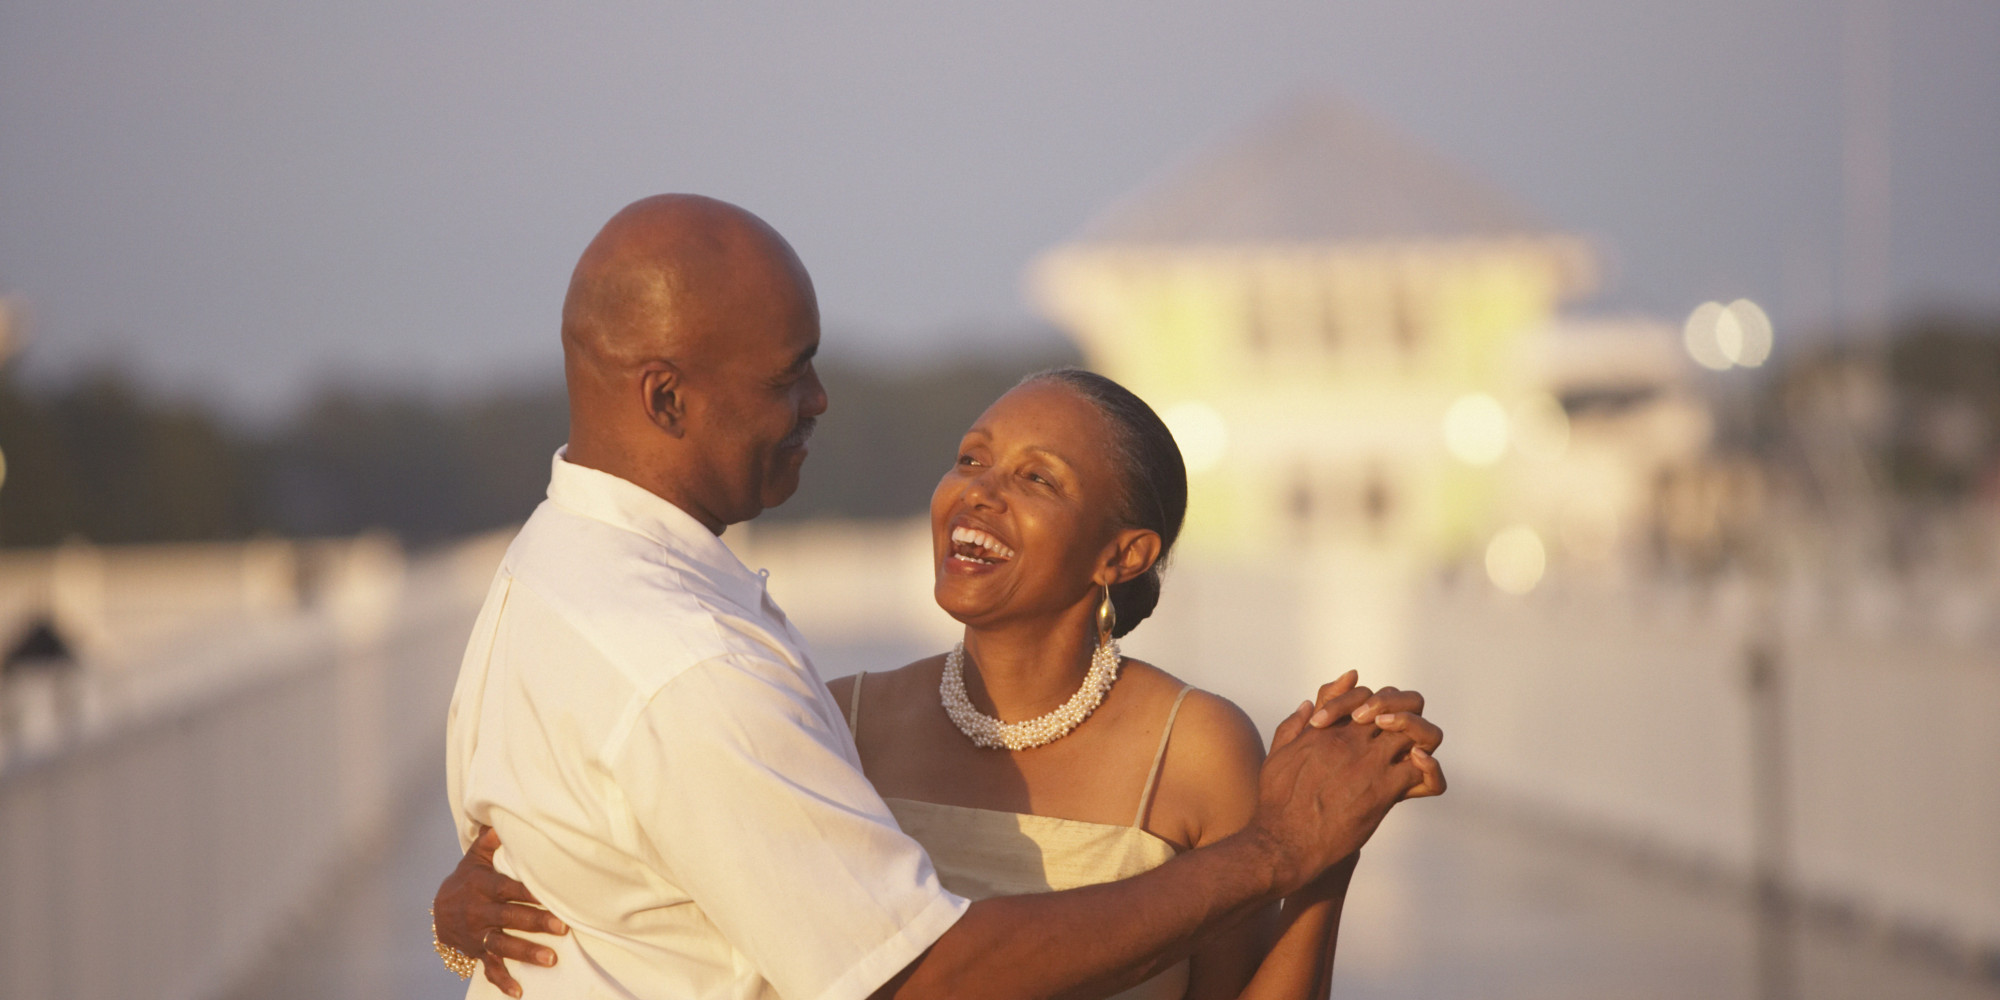 african american dating questions Black singles know blackpeoplemeetcom is the premier online destination for african american dating to meet black men or black women in your area, sign up today free.